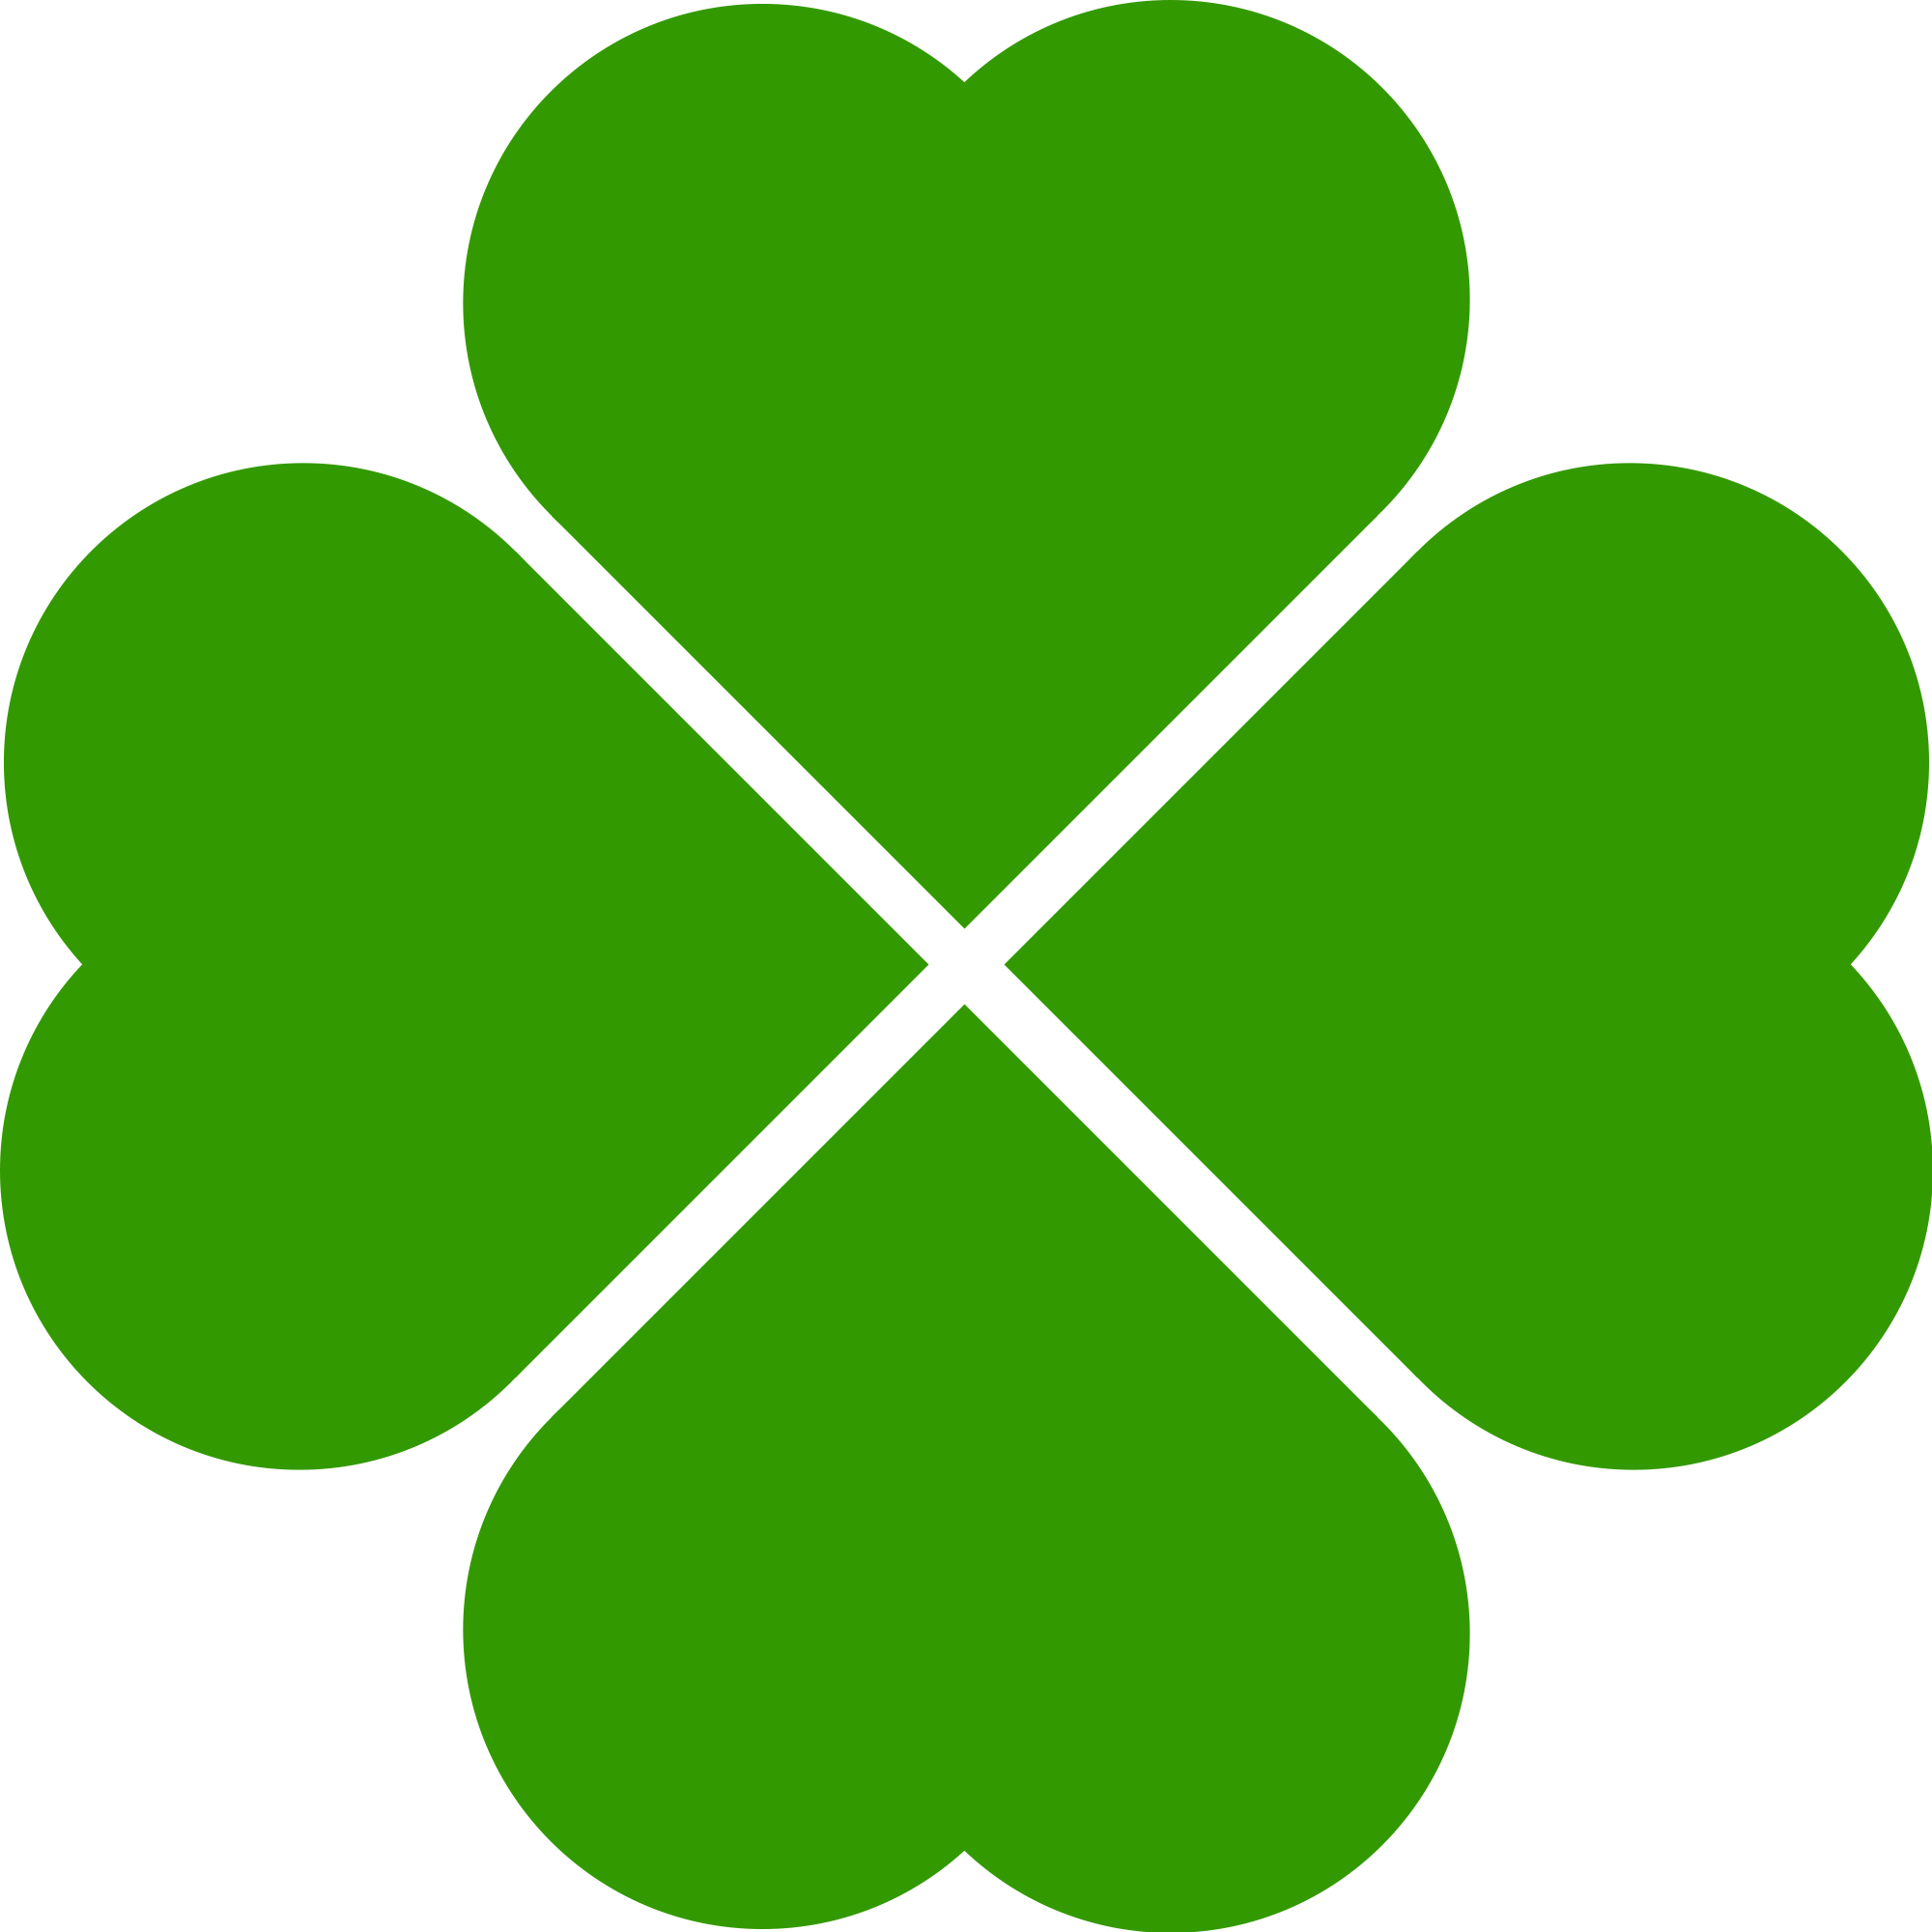 clipart royalty free download clover svg #86518495